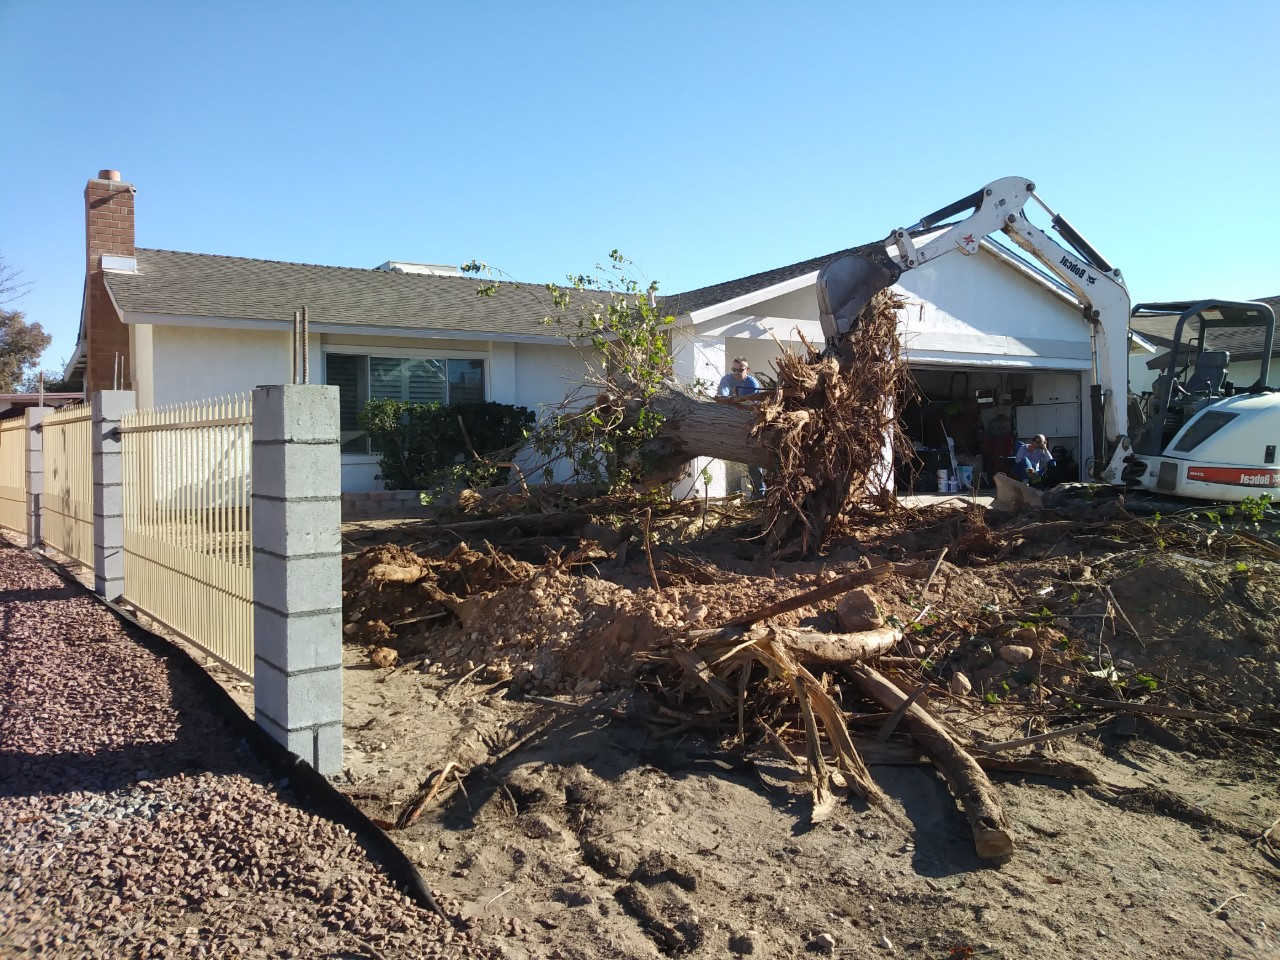 Lot clearing of multiple trees and their roots prior to construction by Garden Grove Tree Service.